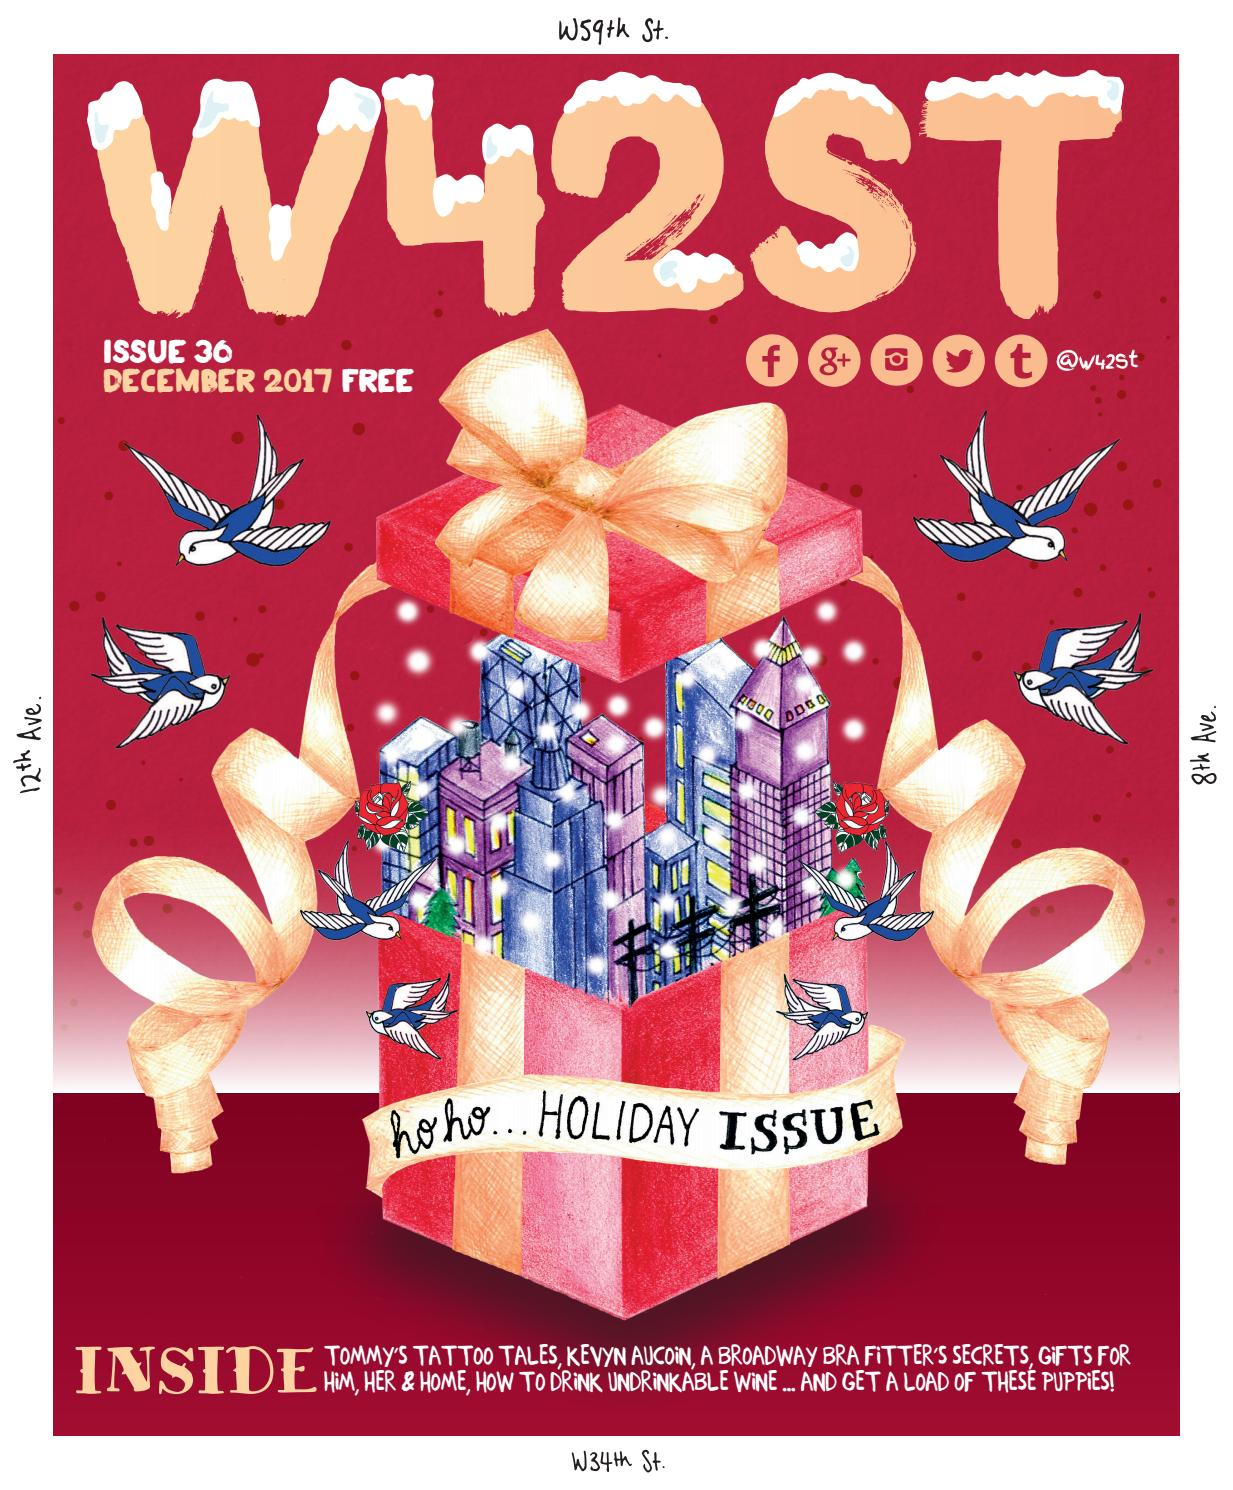 09a0ff1ac W42ST Issue 36 - the Ho-ho-holidays issue by W42ST Magazine - issuu